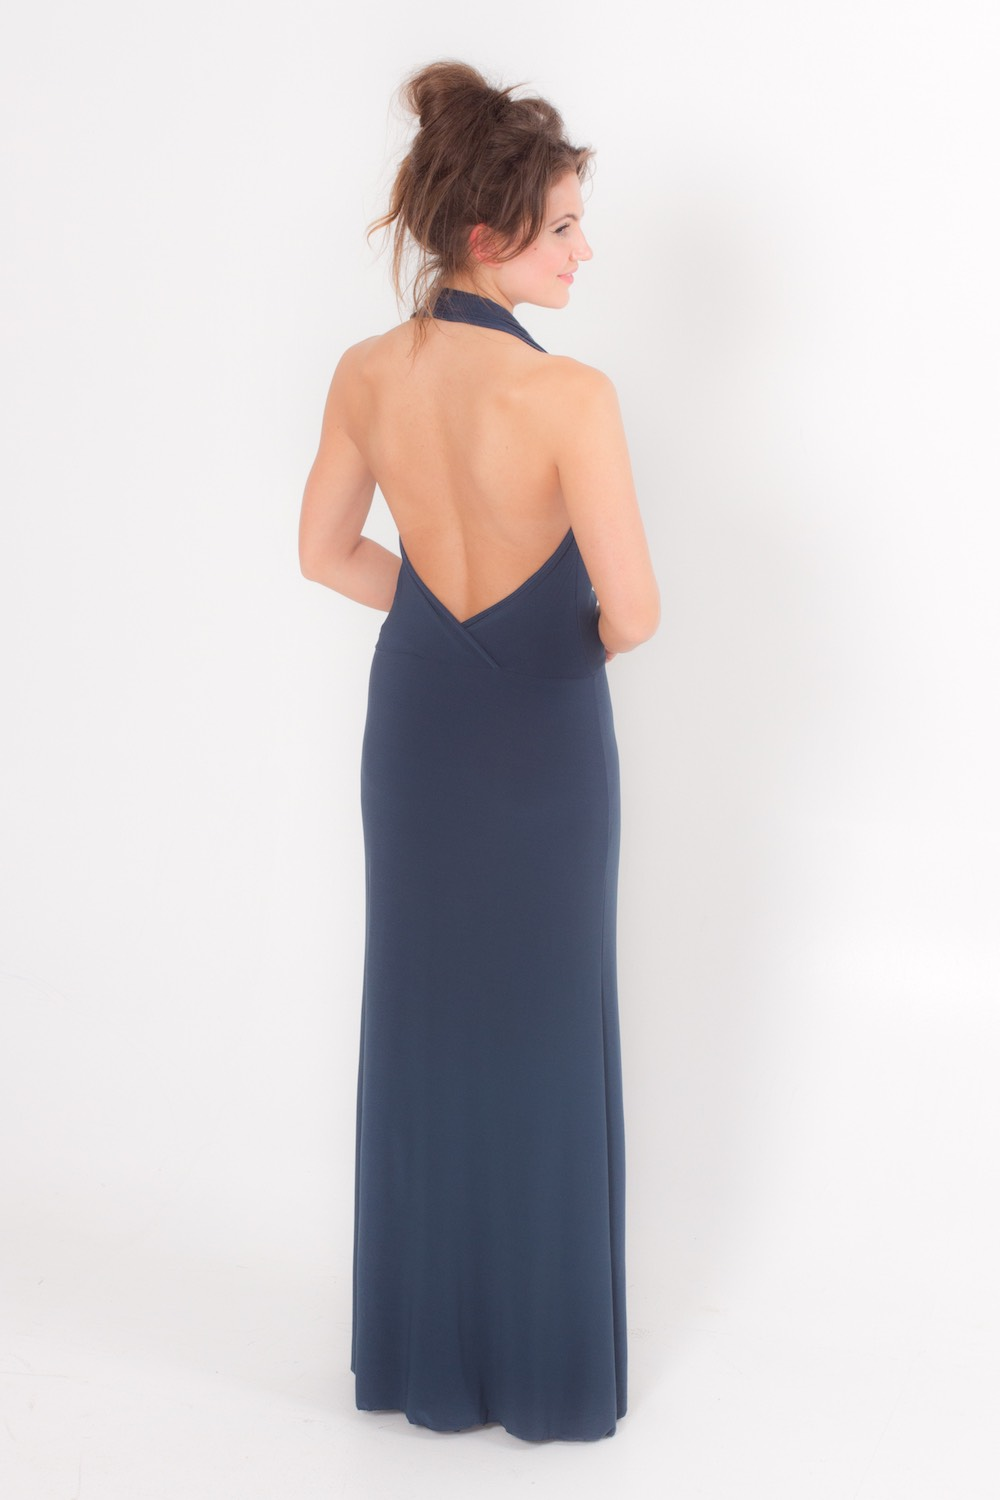 Dress L100 Blue Grey Rear